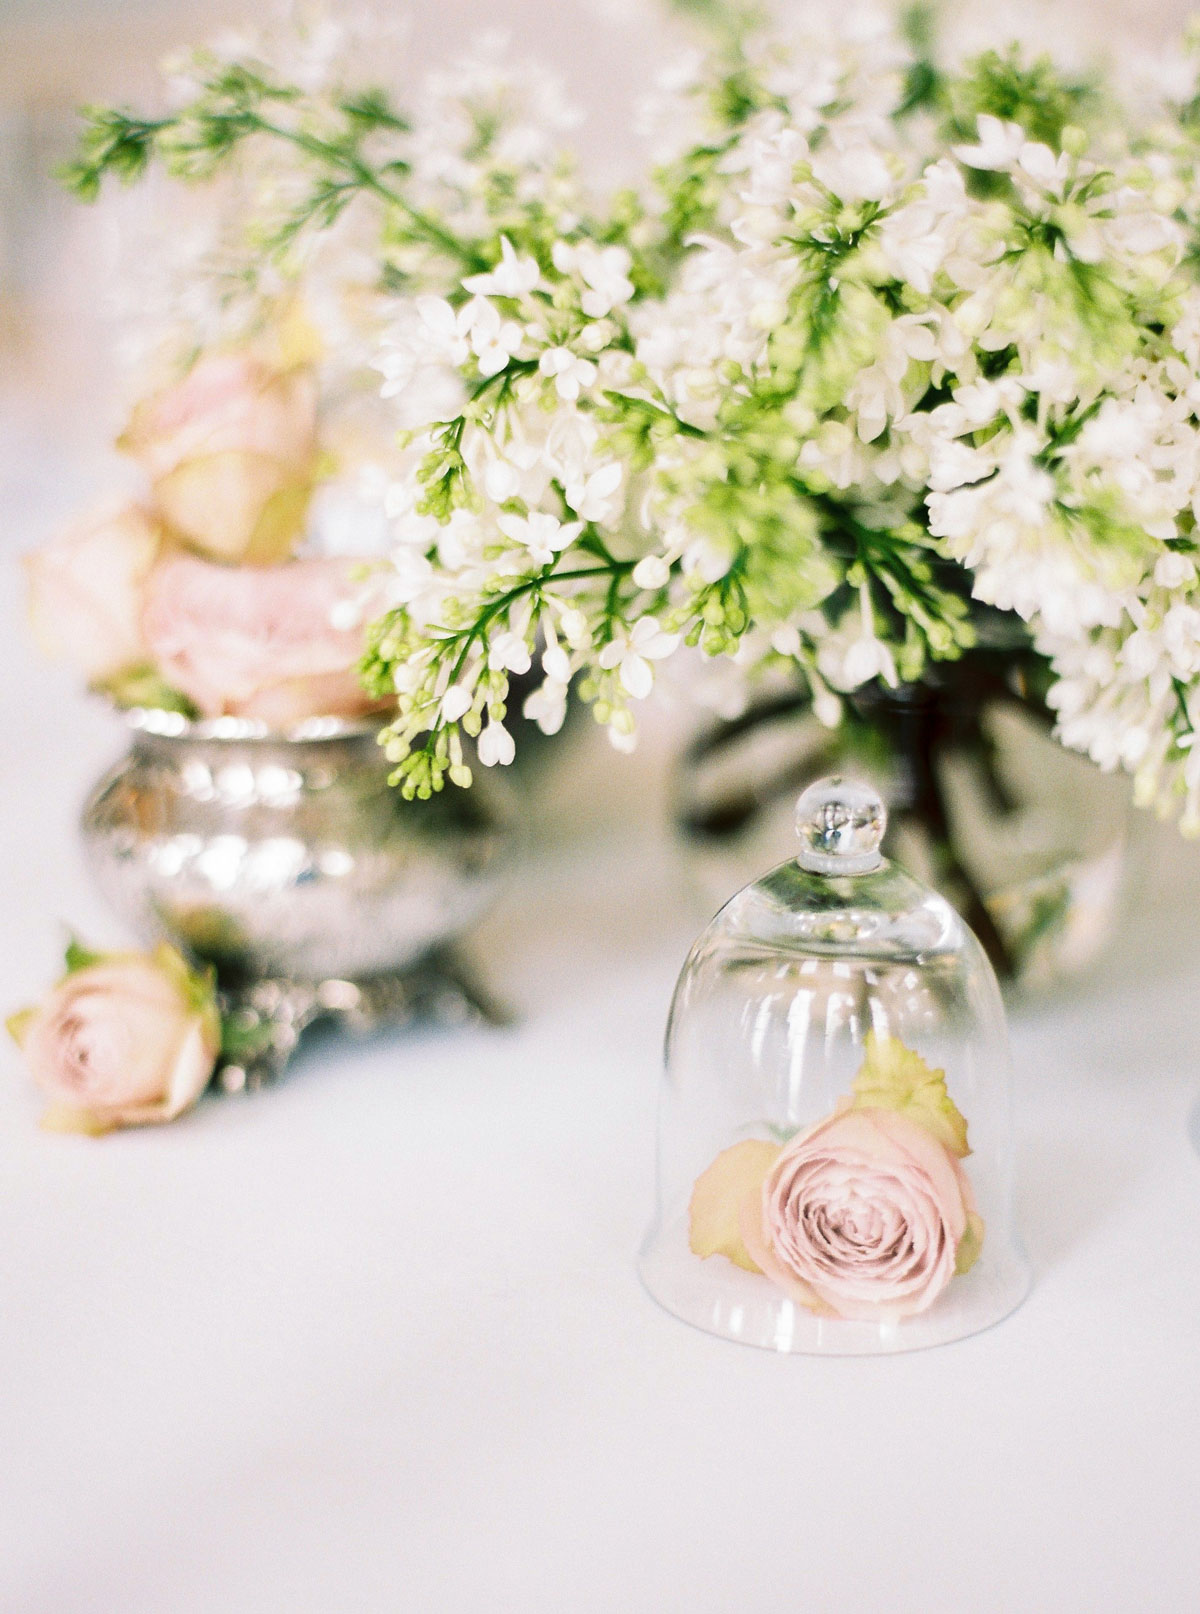 sarah-harper-floral-design-luxury-wedding-florist-flowers-oxfordshite-cotsworlds-gallery-Lucy_Davenport_Photography_Aynhoe_SpringSummer-009